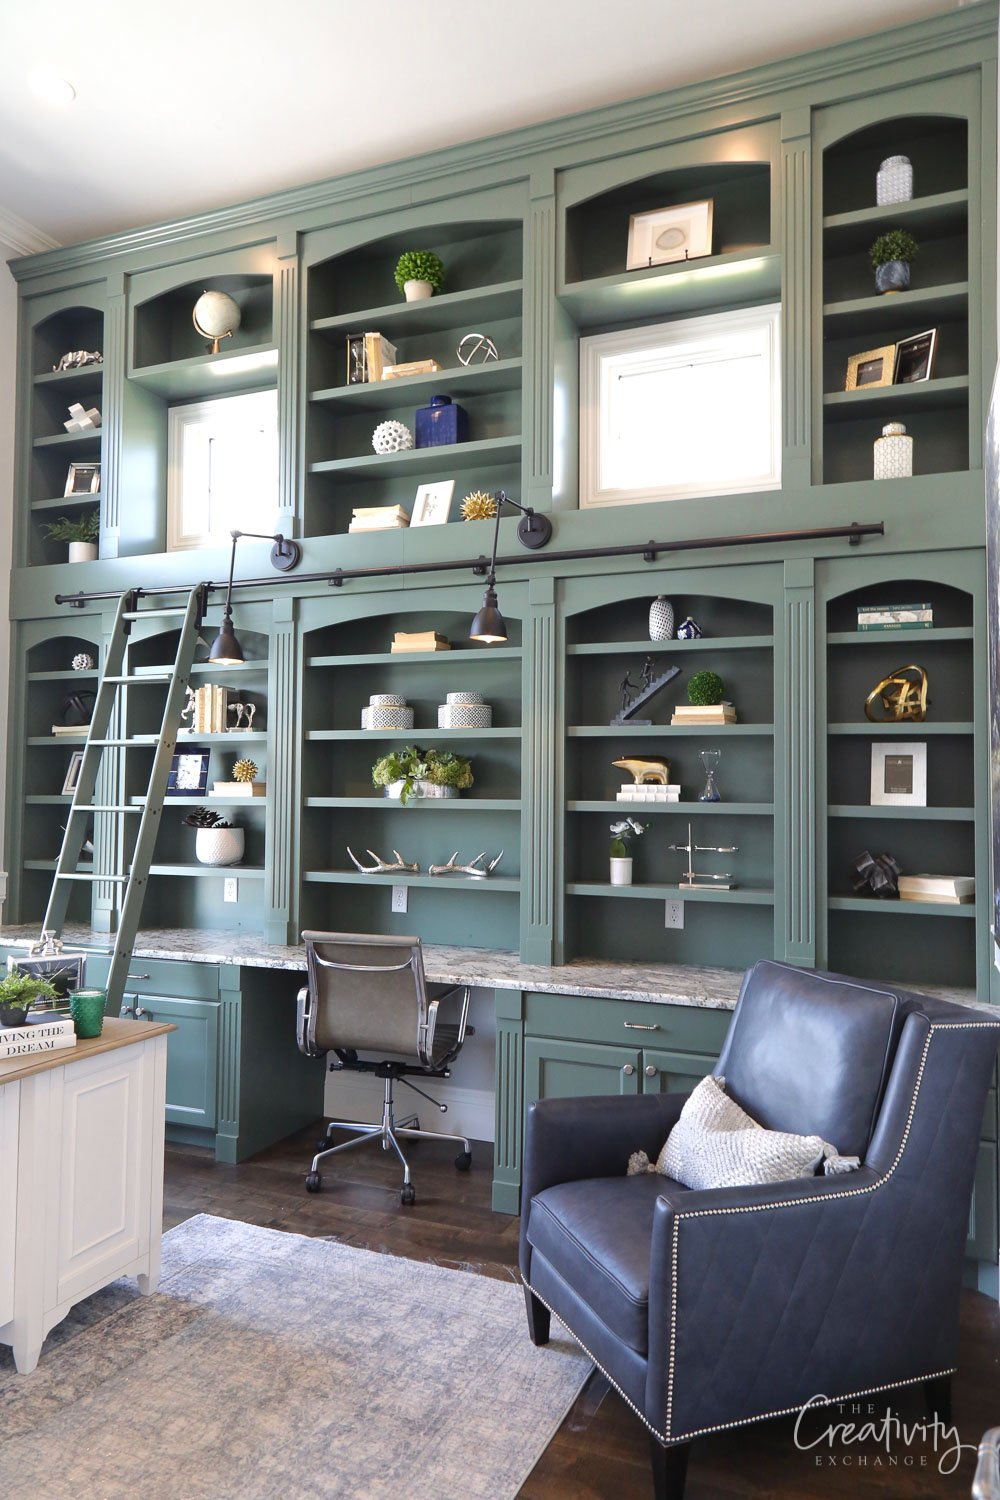 Cabinet Color is Benjamin Moore Enchanted Forest